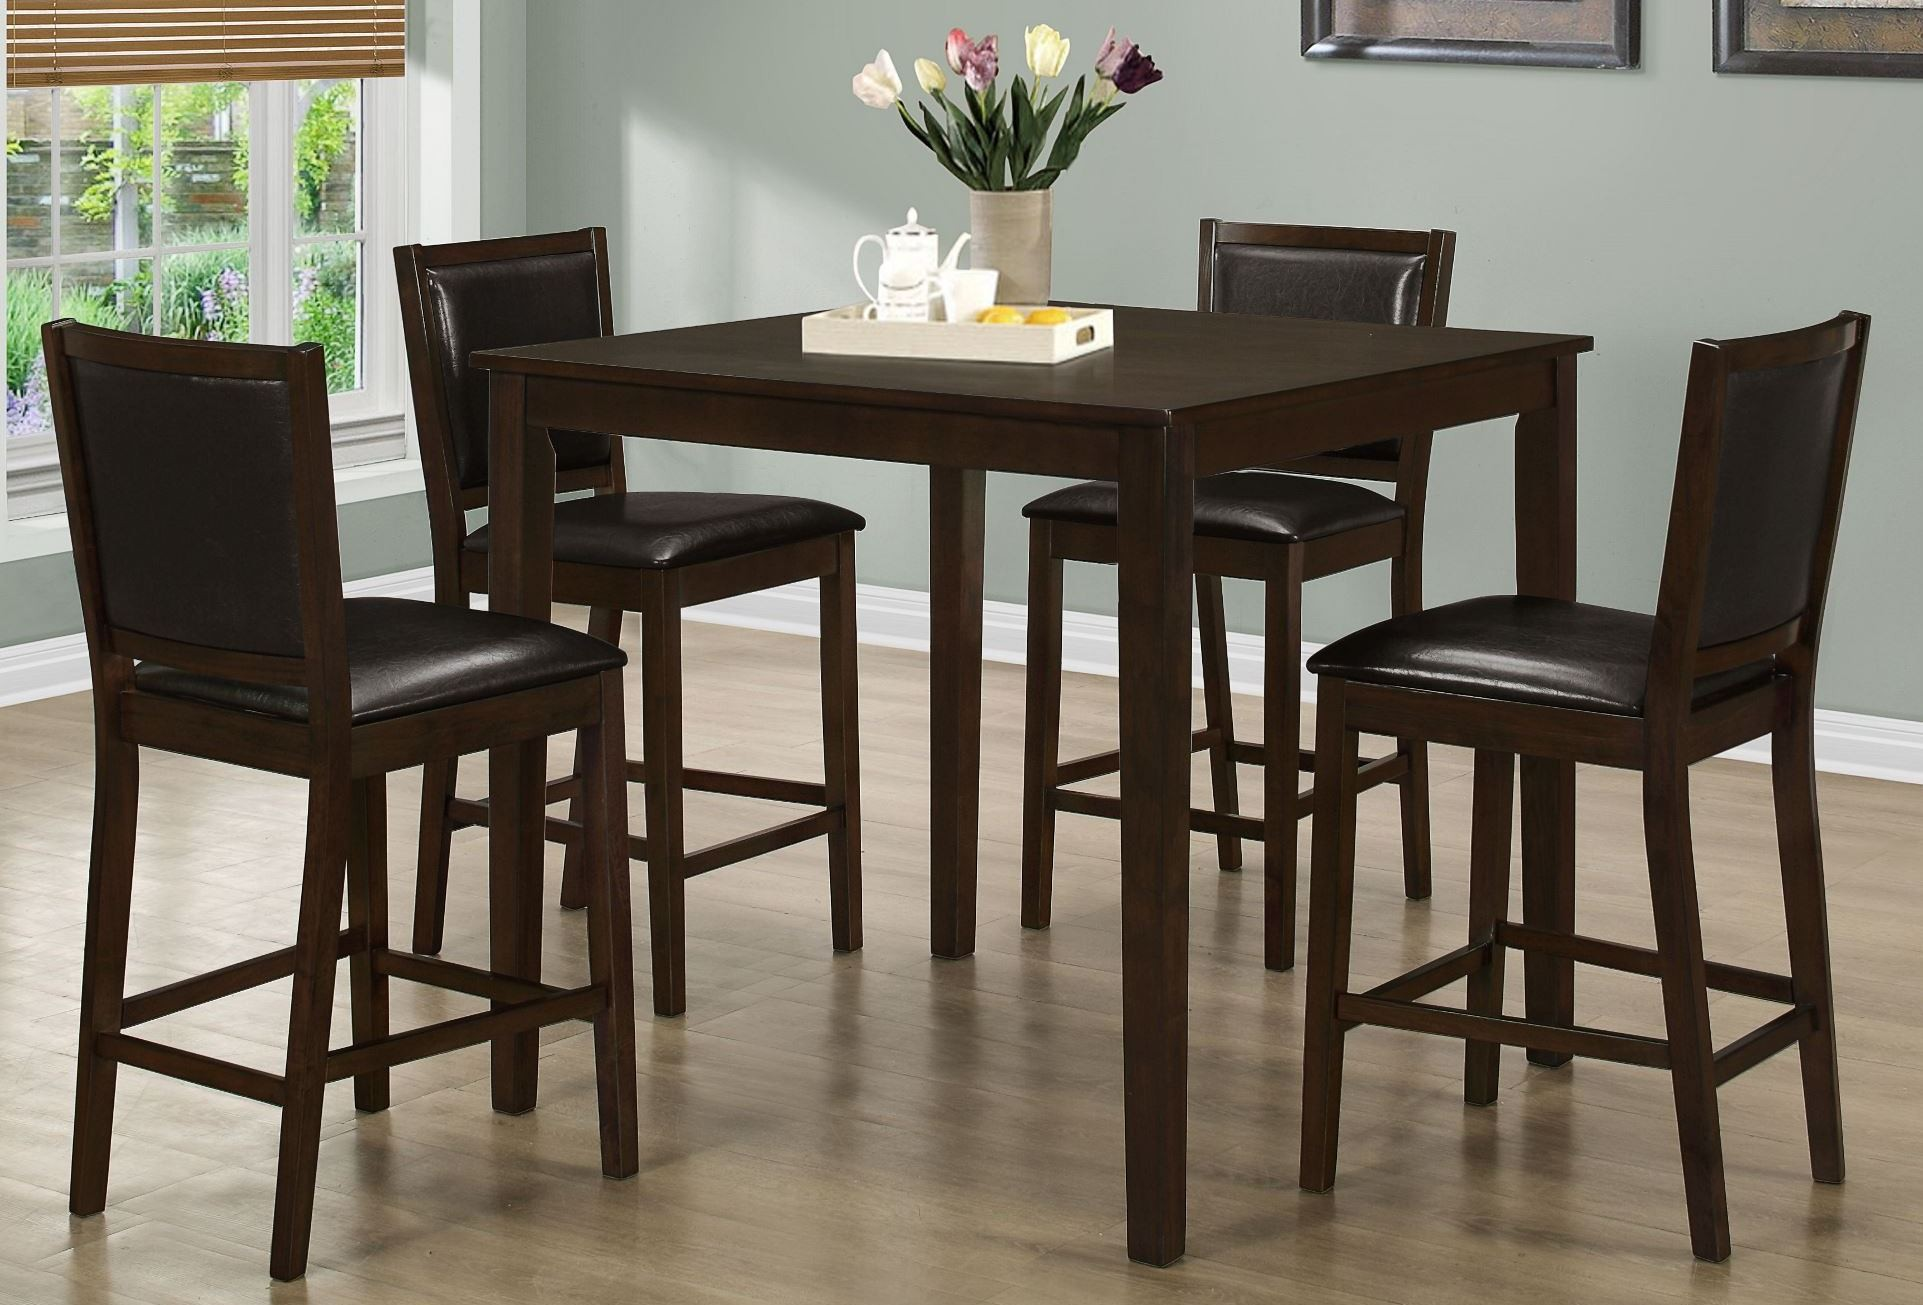 Walnut 5 piece counter height dining room set 1549 monarch for 5 piece dining room sets